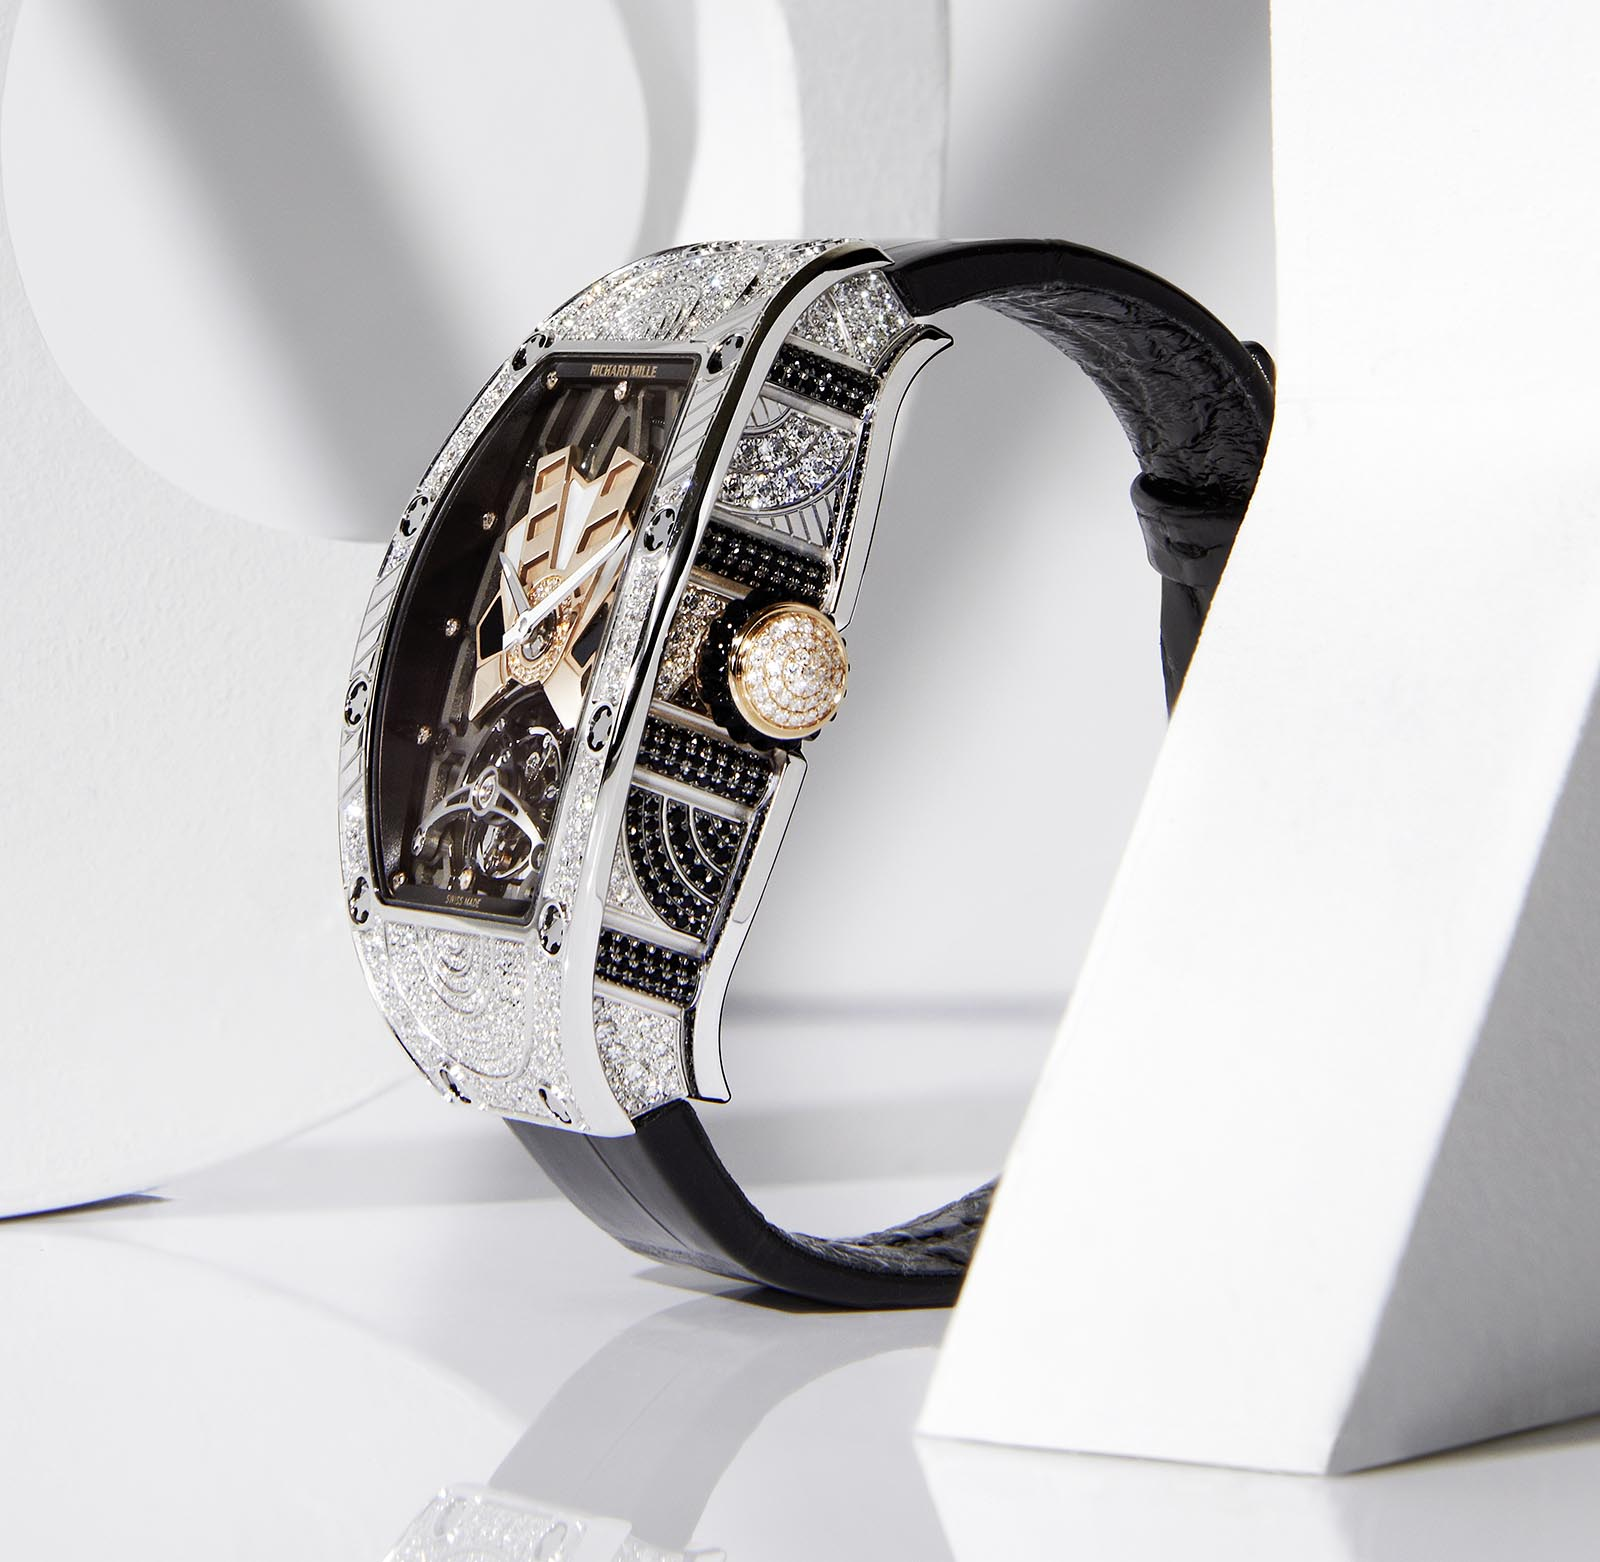 Richard Mille RM71-01 Automatic Tourbillon Talisman 4